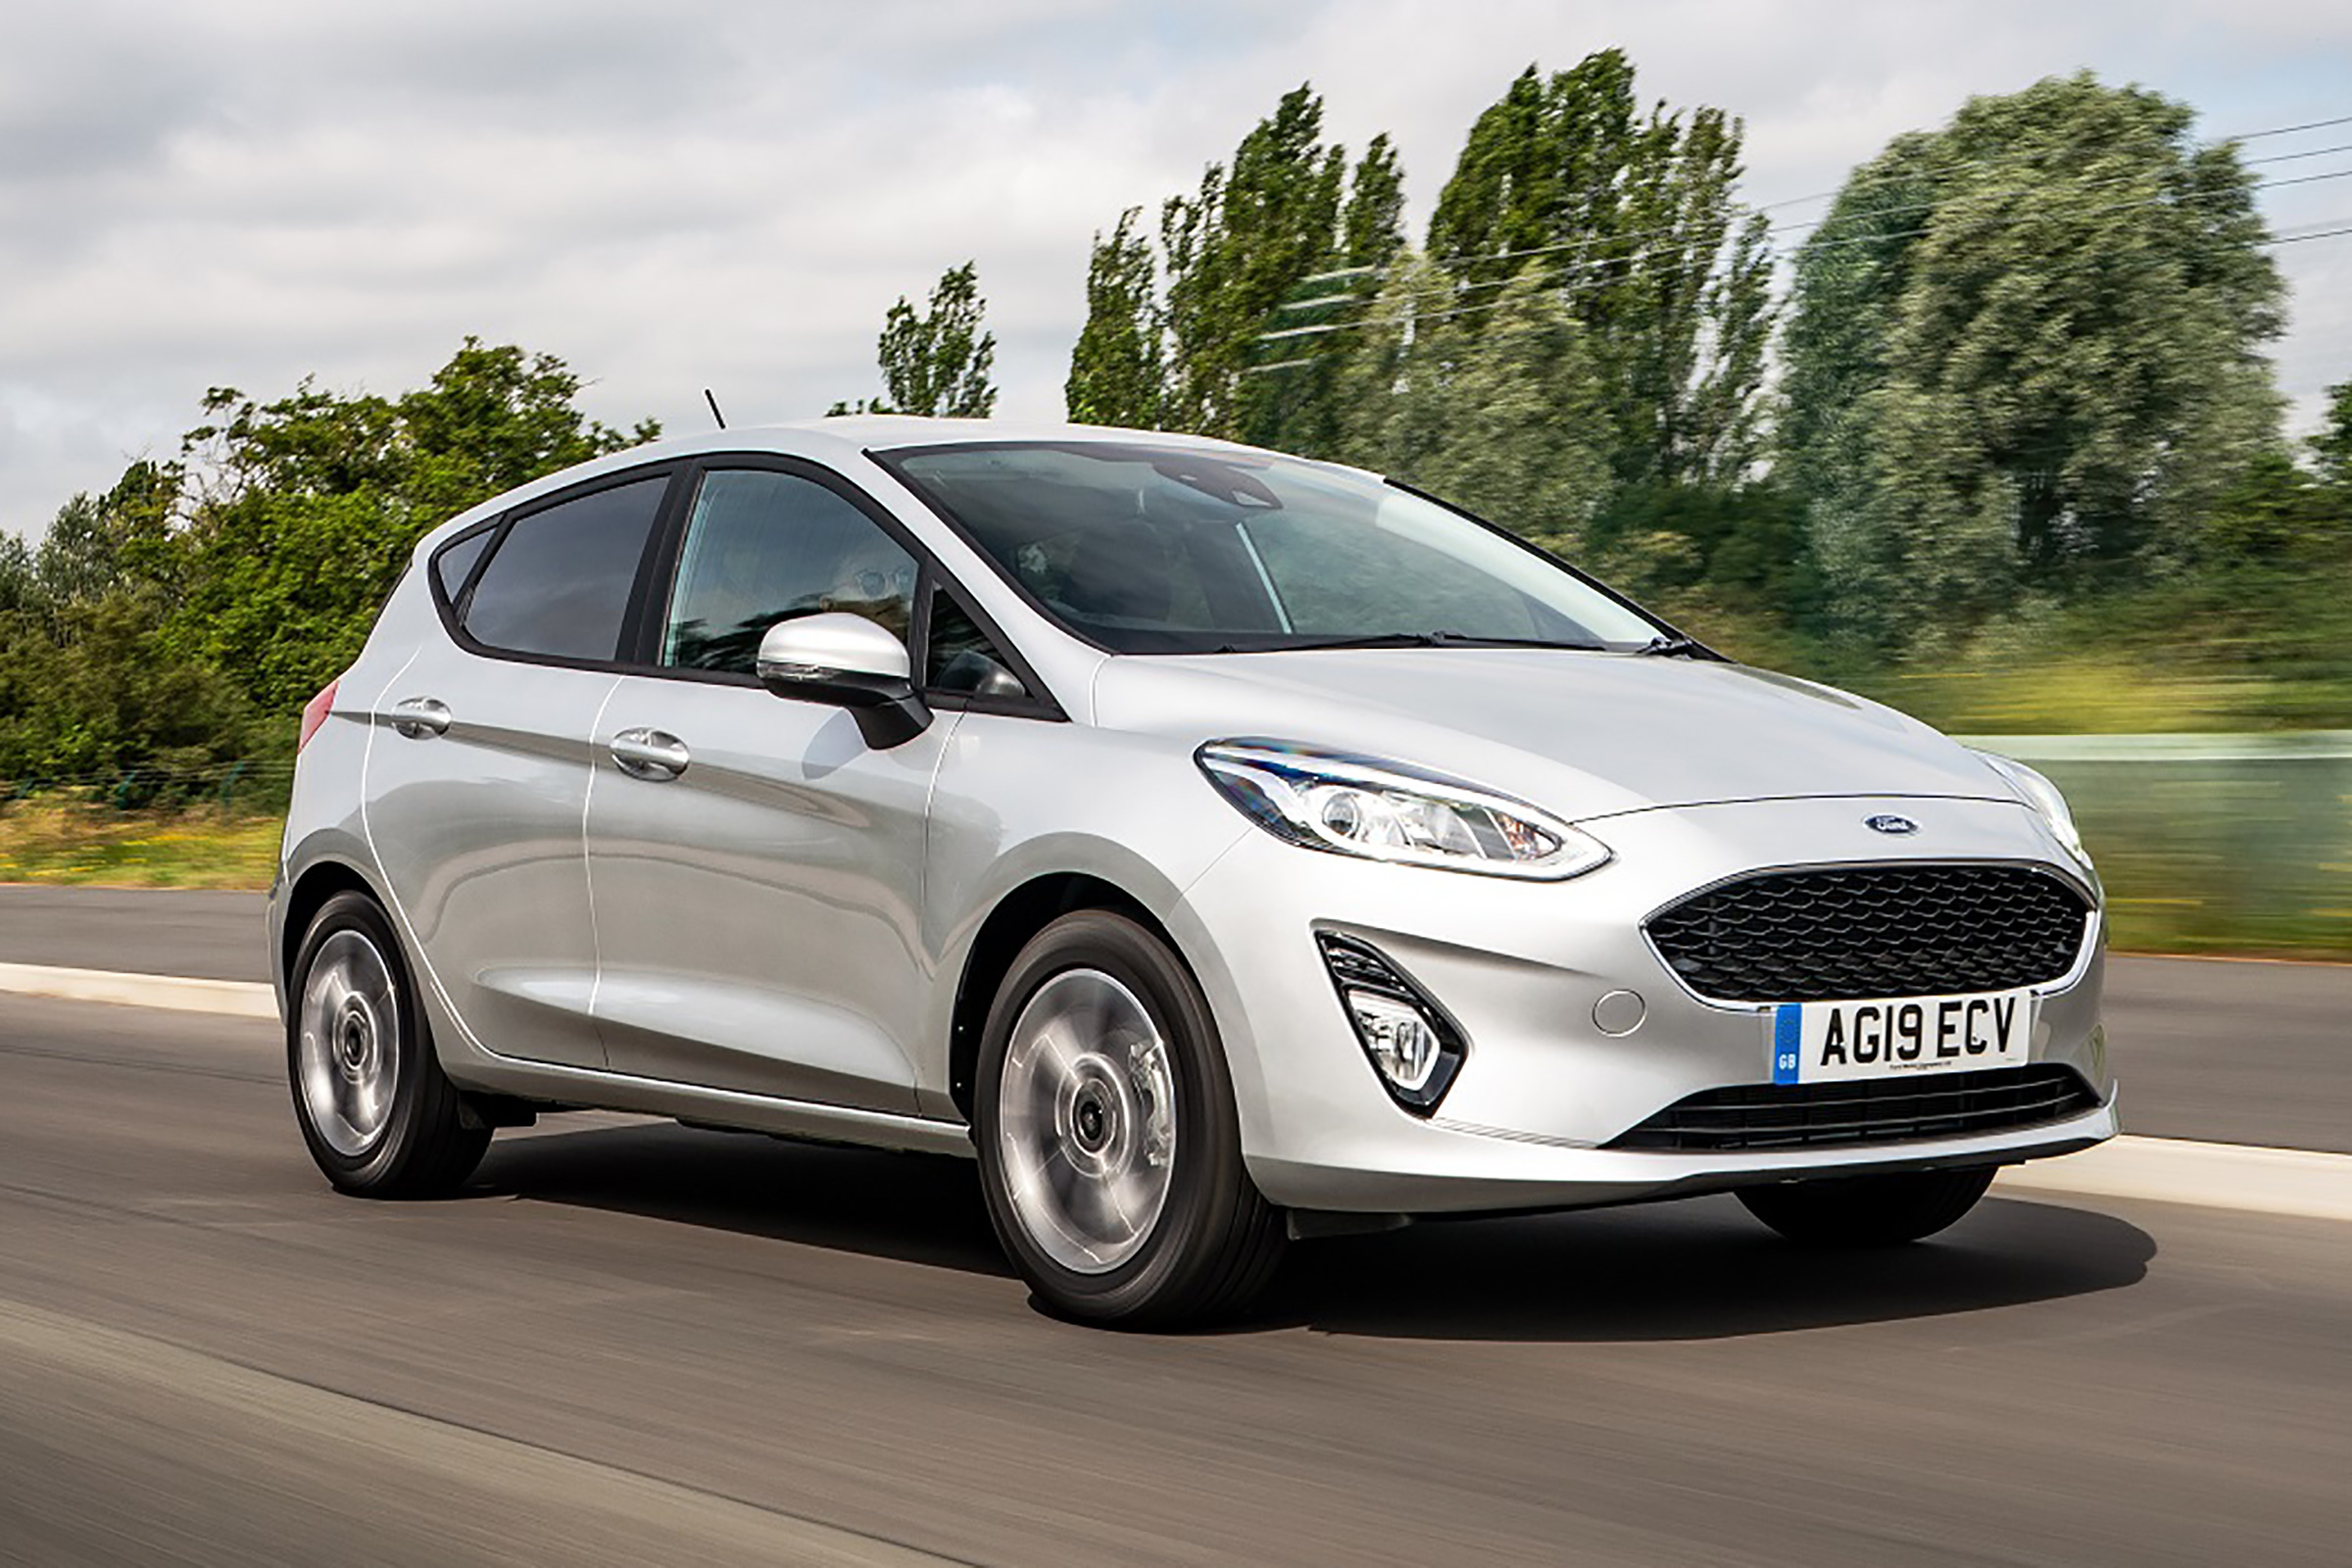 new ford fiesta trend 2020 review auto express auto express